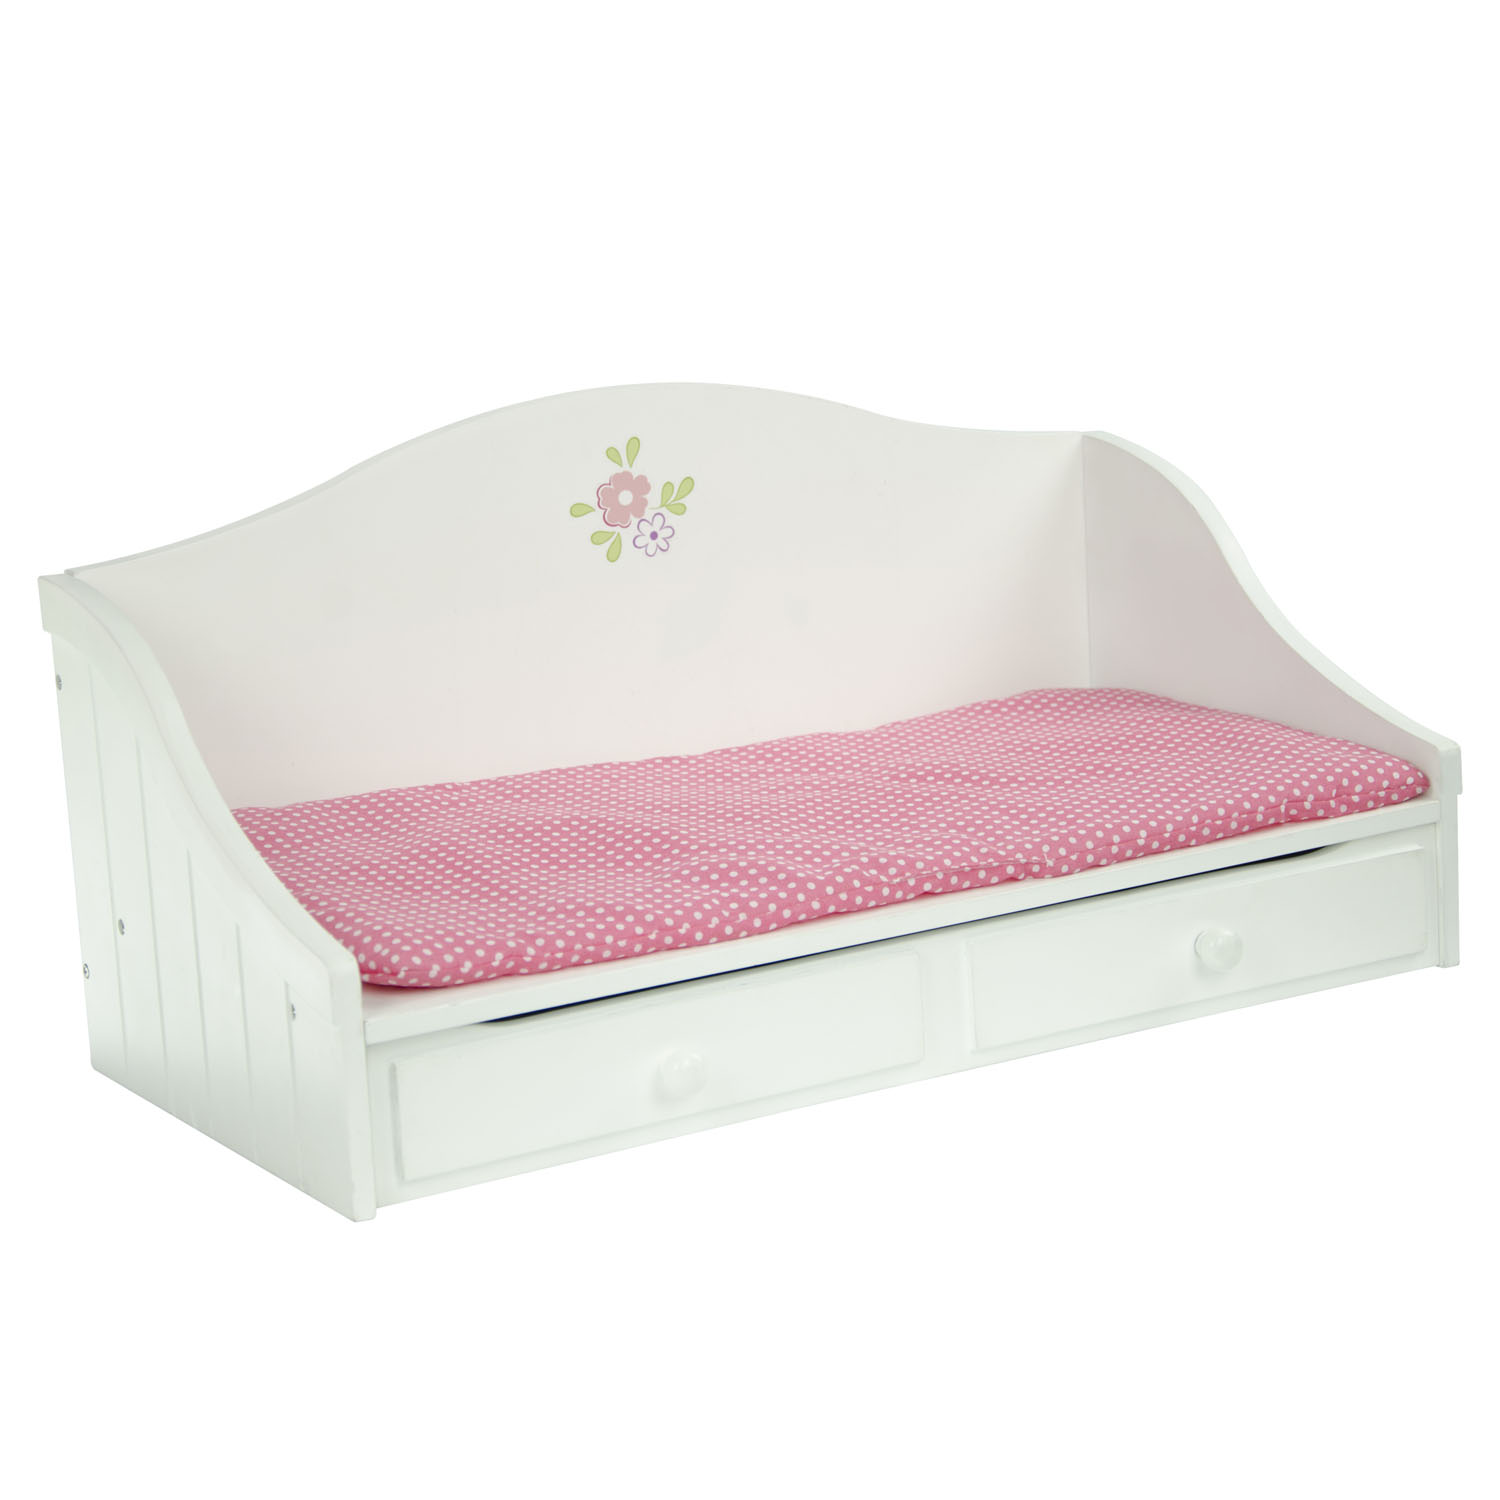 "Olivia's Little World Little Princess 18"" Doll Furniture - Trundle Bed"